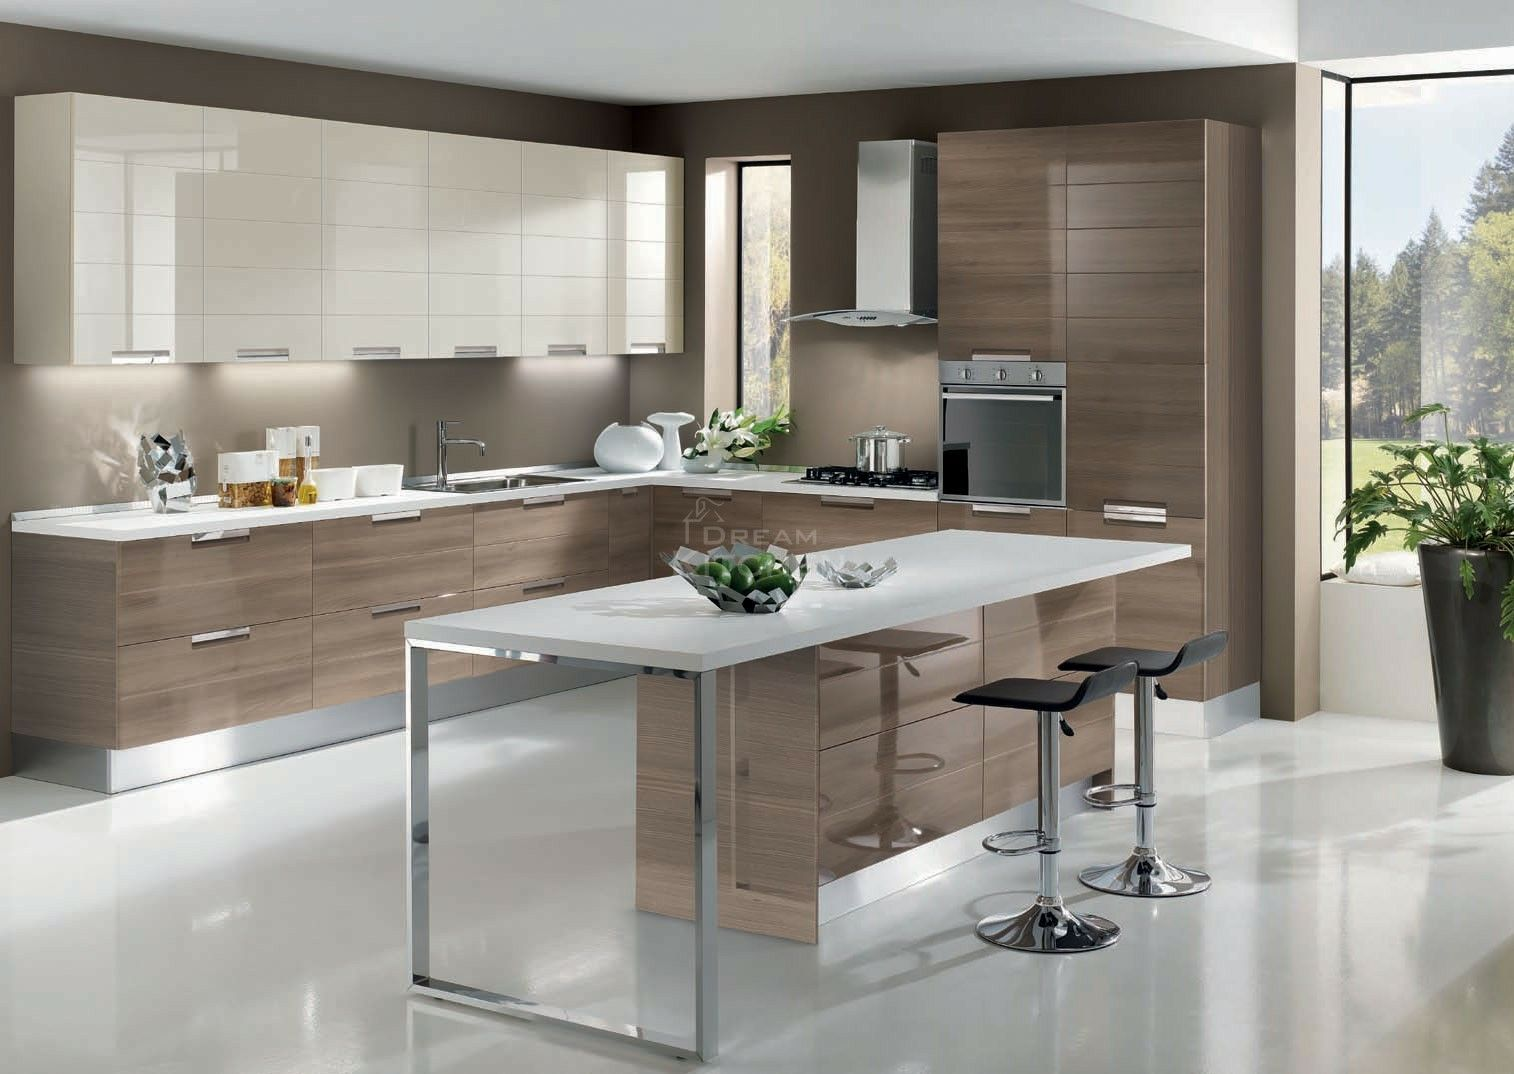 Living Room And Kitchen Design Pinaggeliki Arvaniti On Νησιά  Pinterest  Kitchens